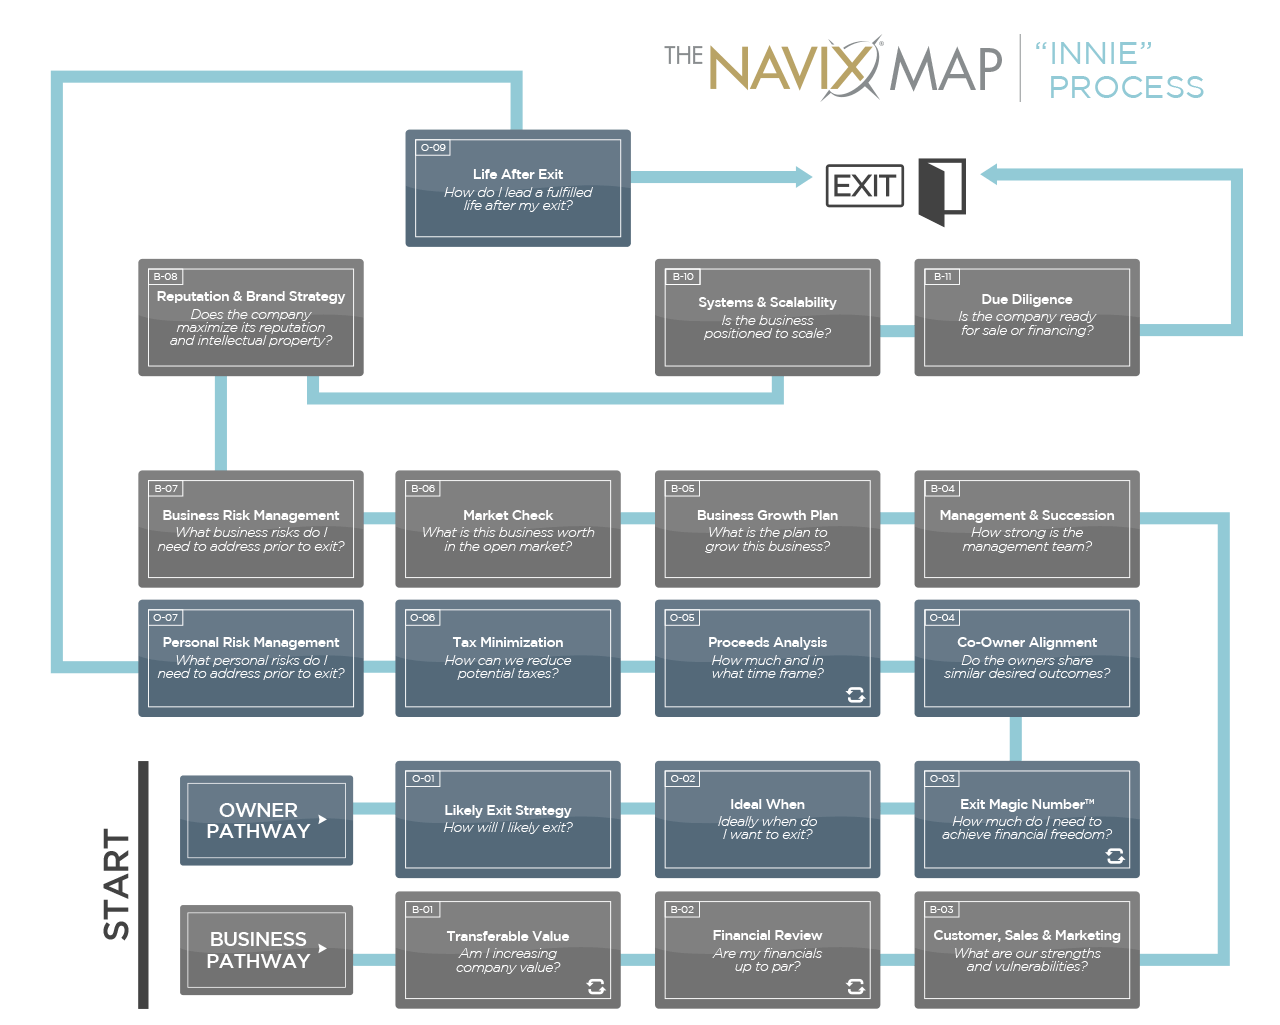 The NAVIX Map   The Innie Process